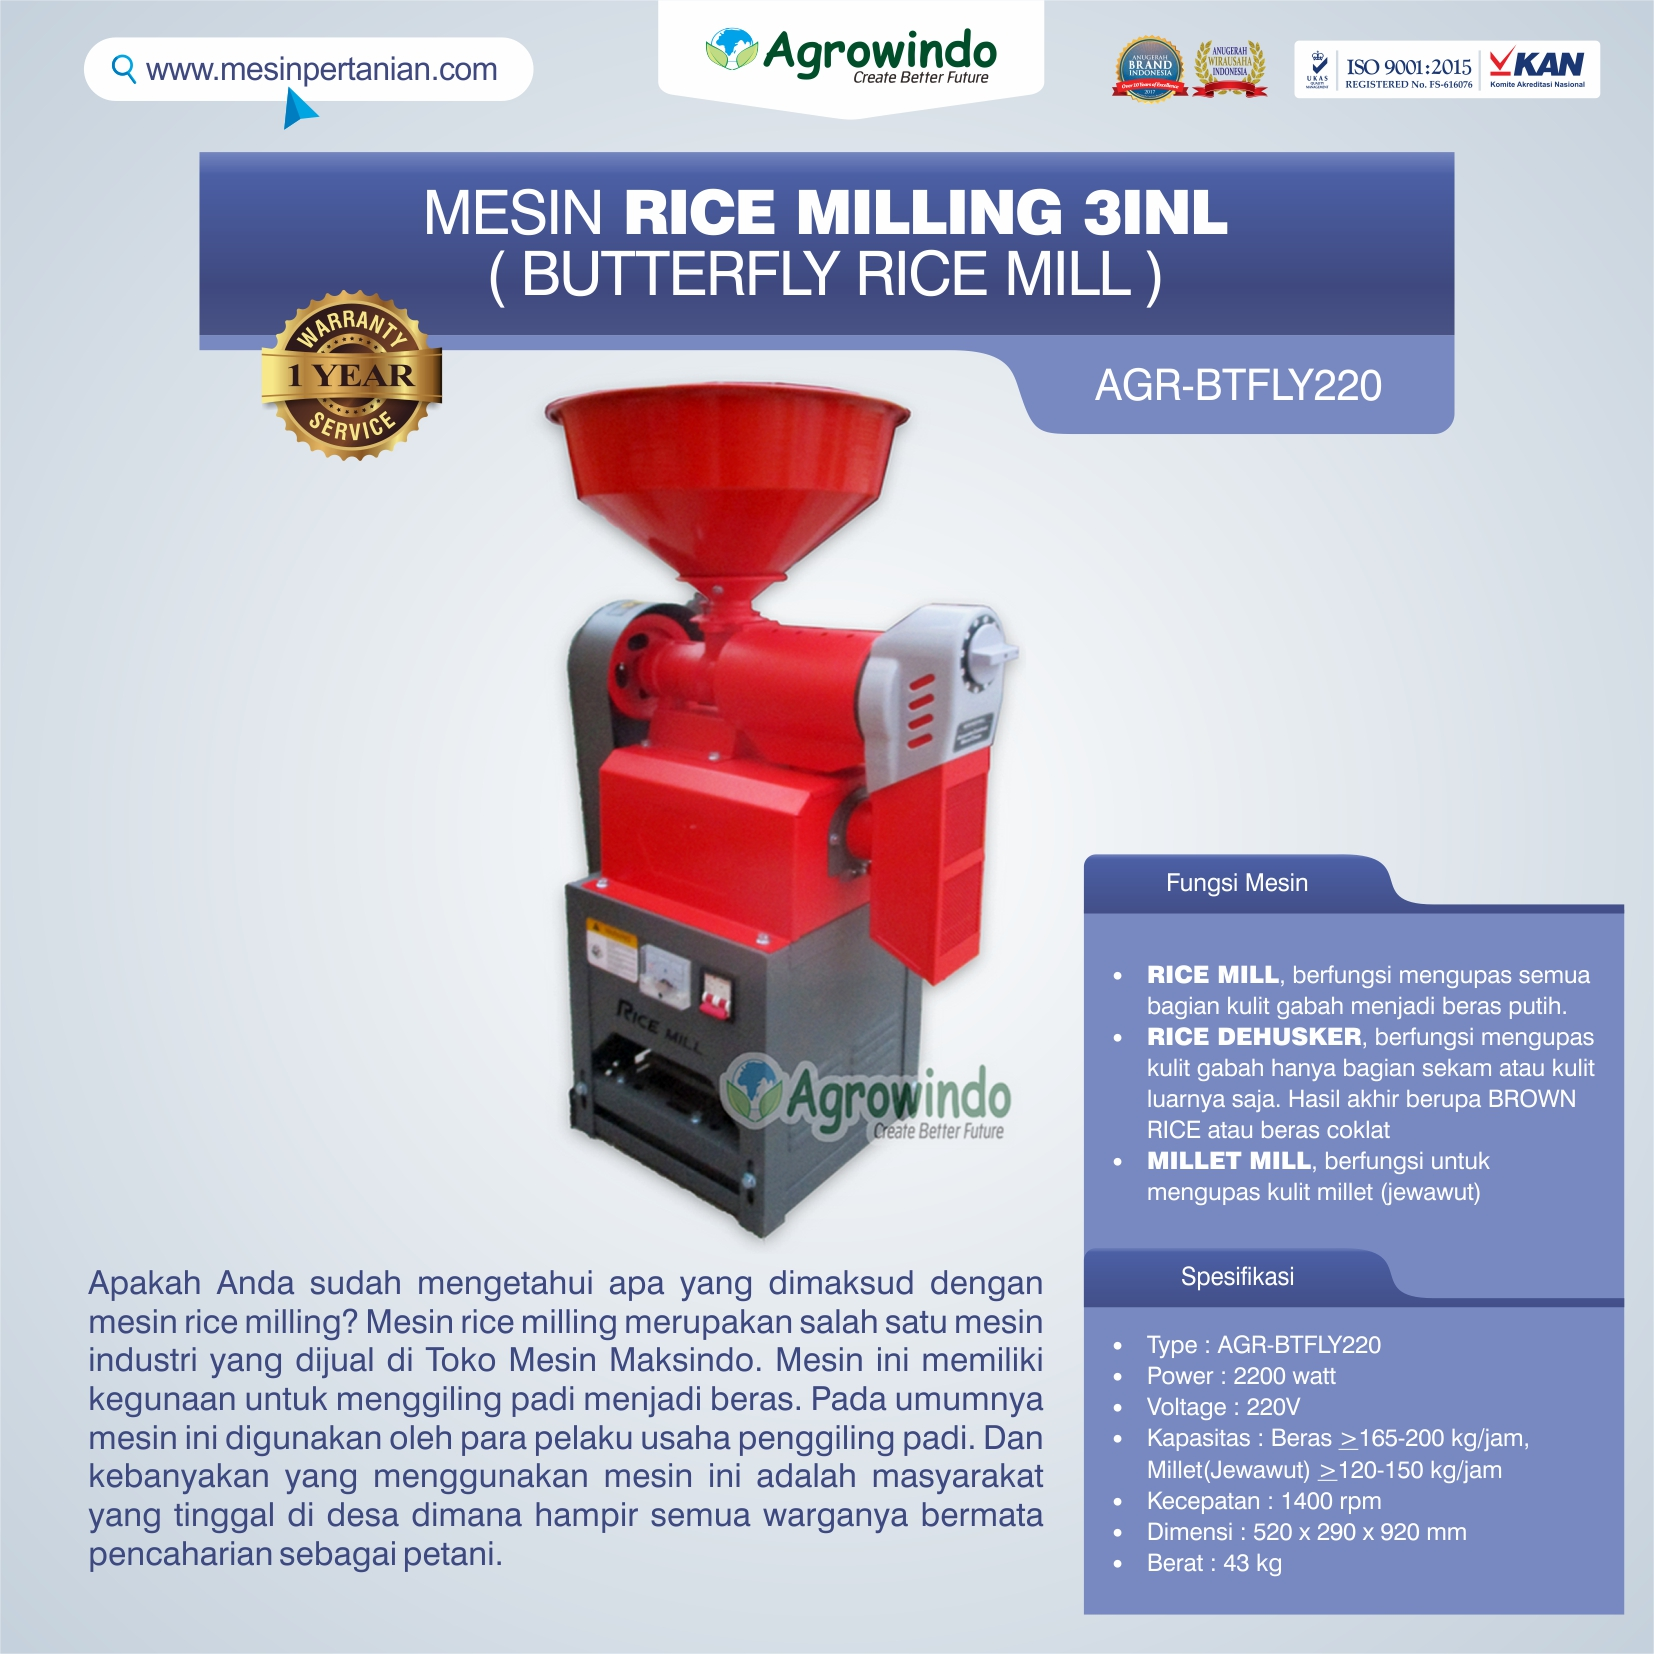 Jual Mesin Rice Milling 3in1 (Butterfly Rice Mill) AGR-BTFLY220 di Yogyakarta